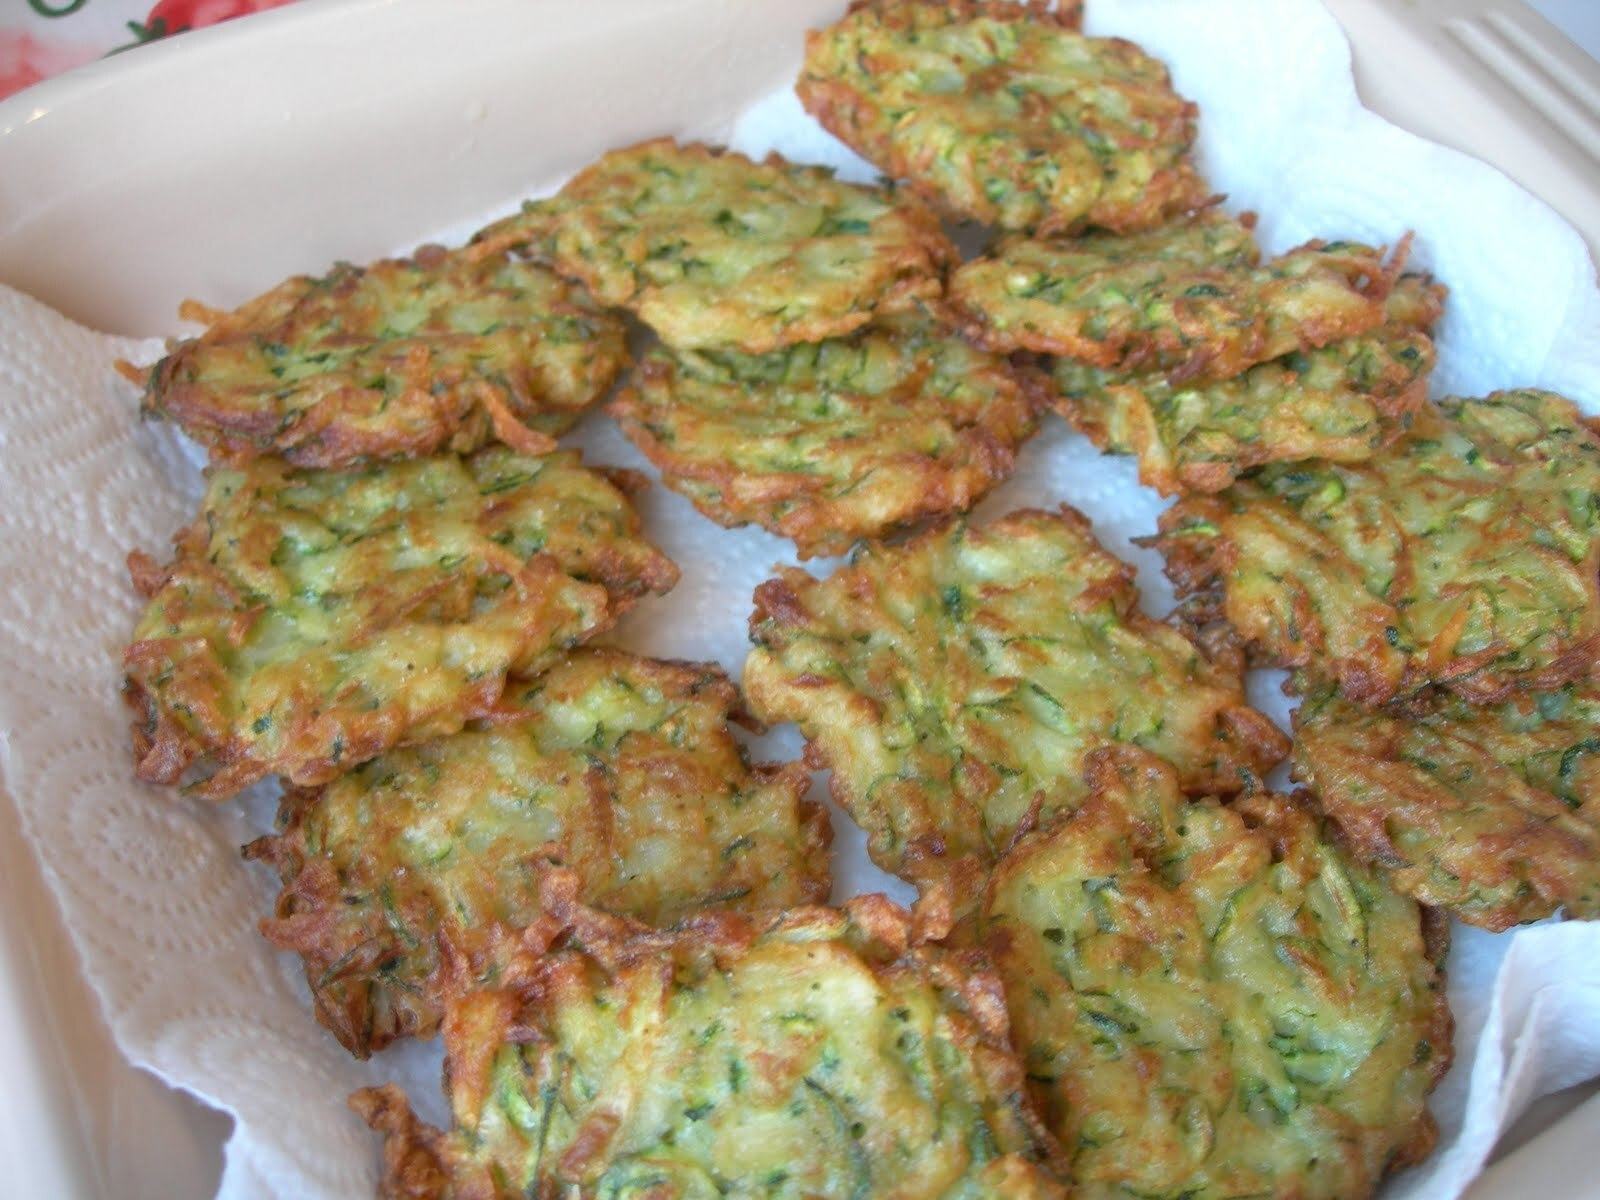 Courgette & Parmesan Fritters